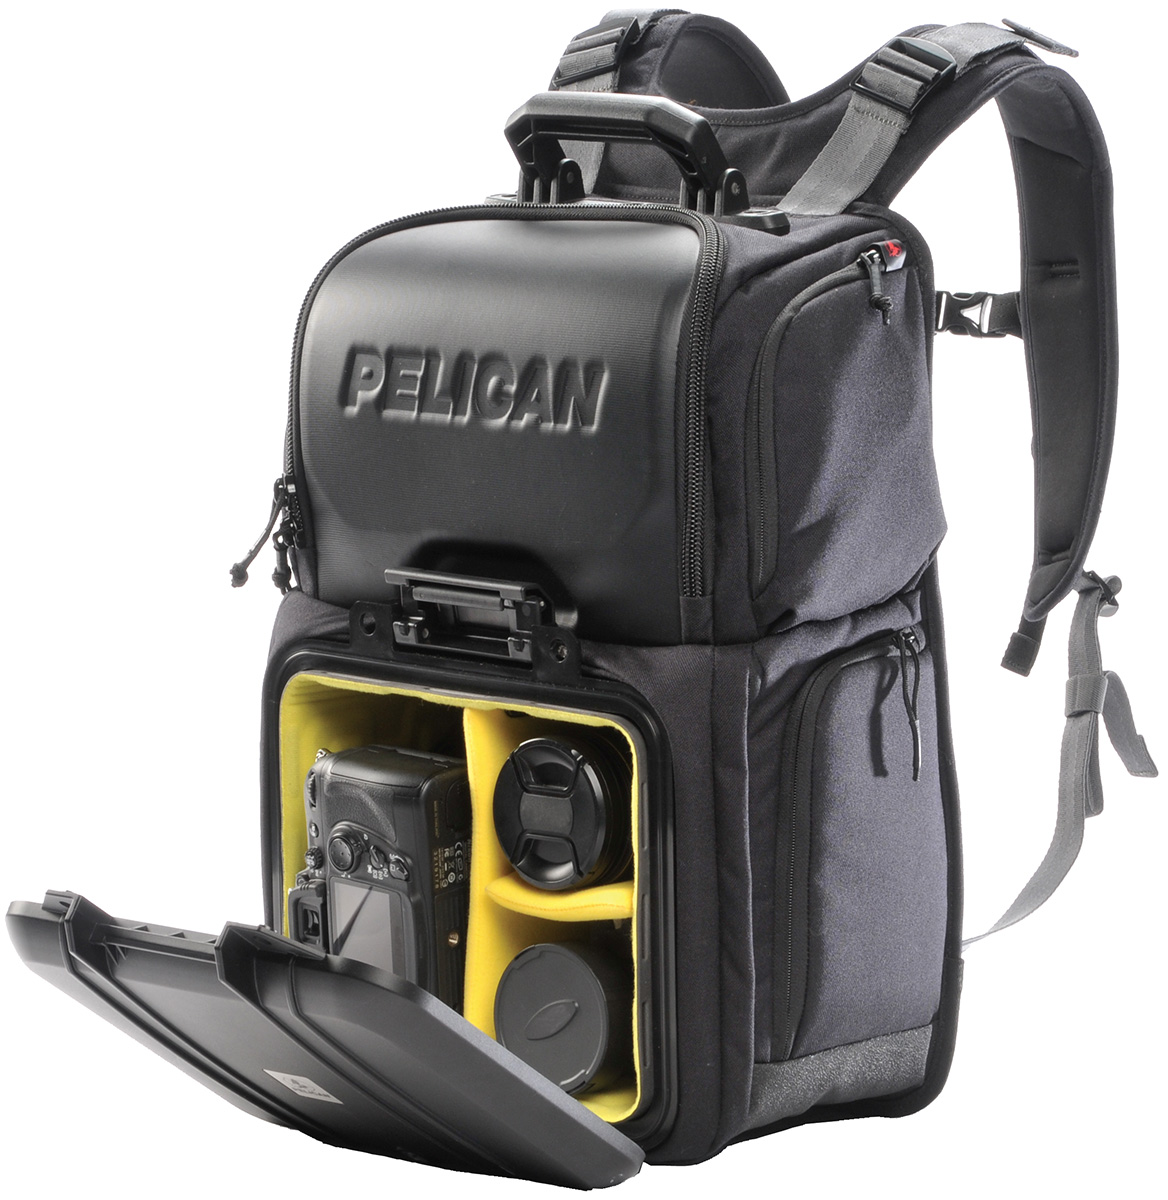 pelican peli products U160 hard photographer camera backpack